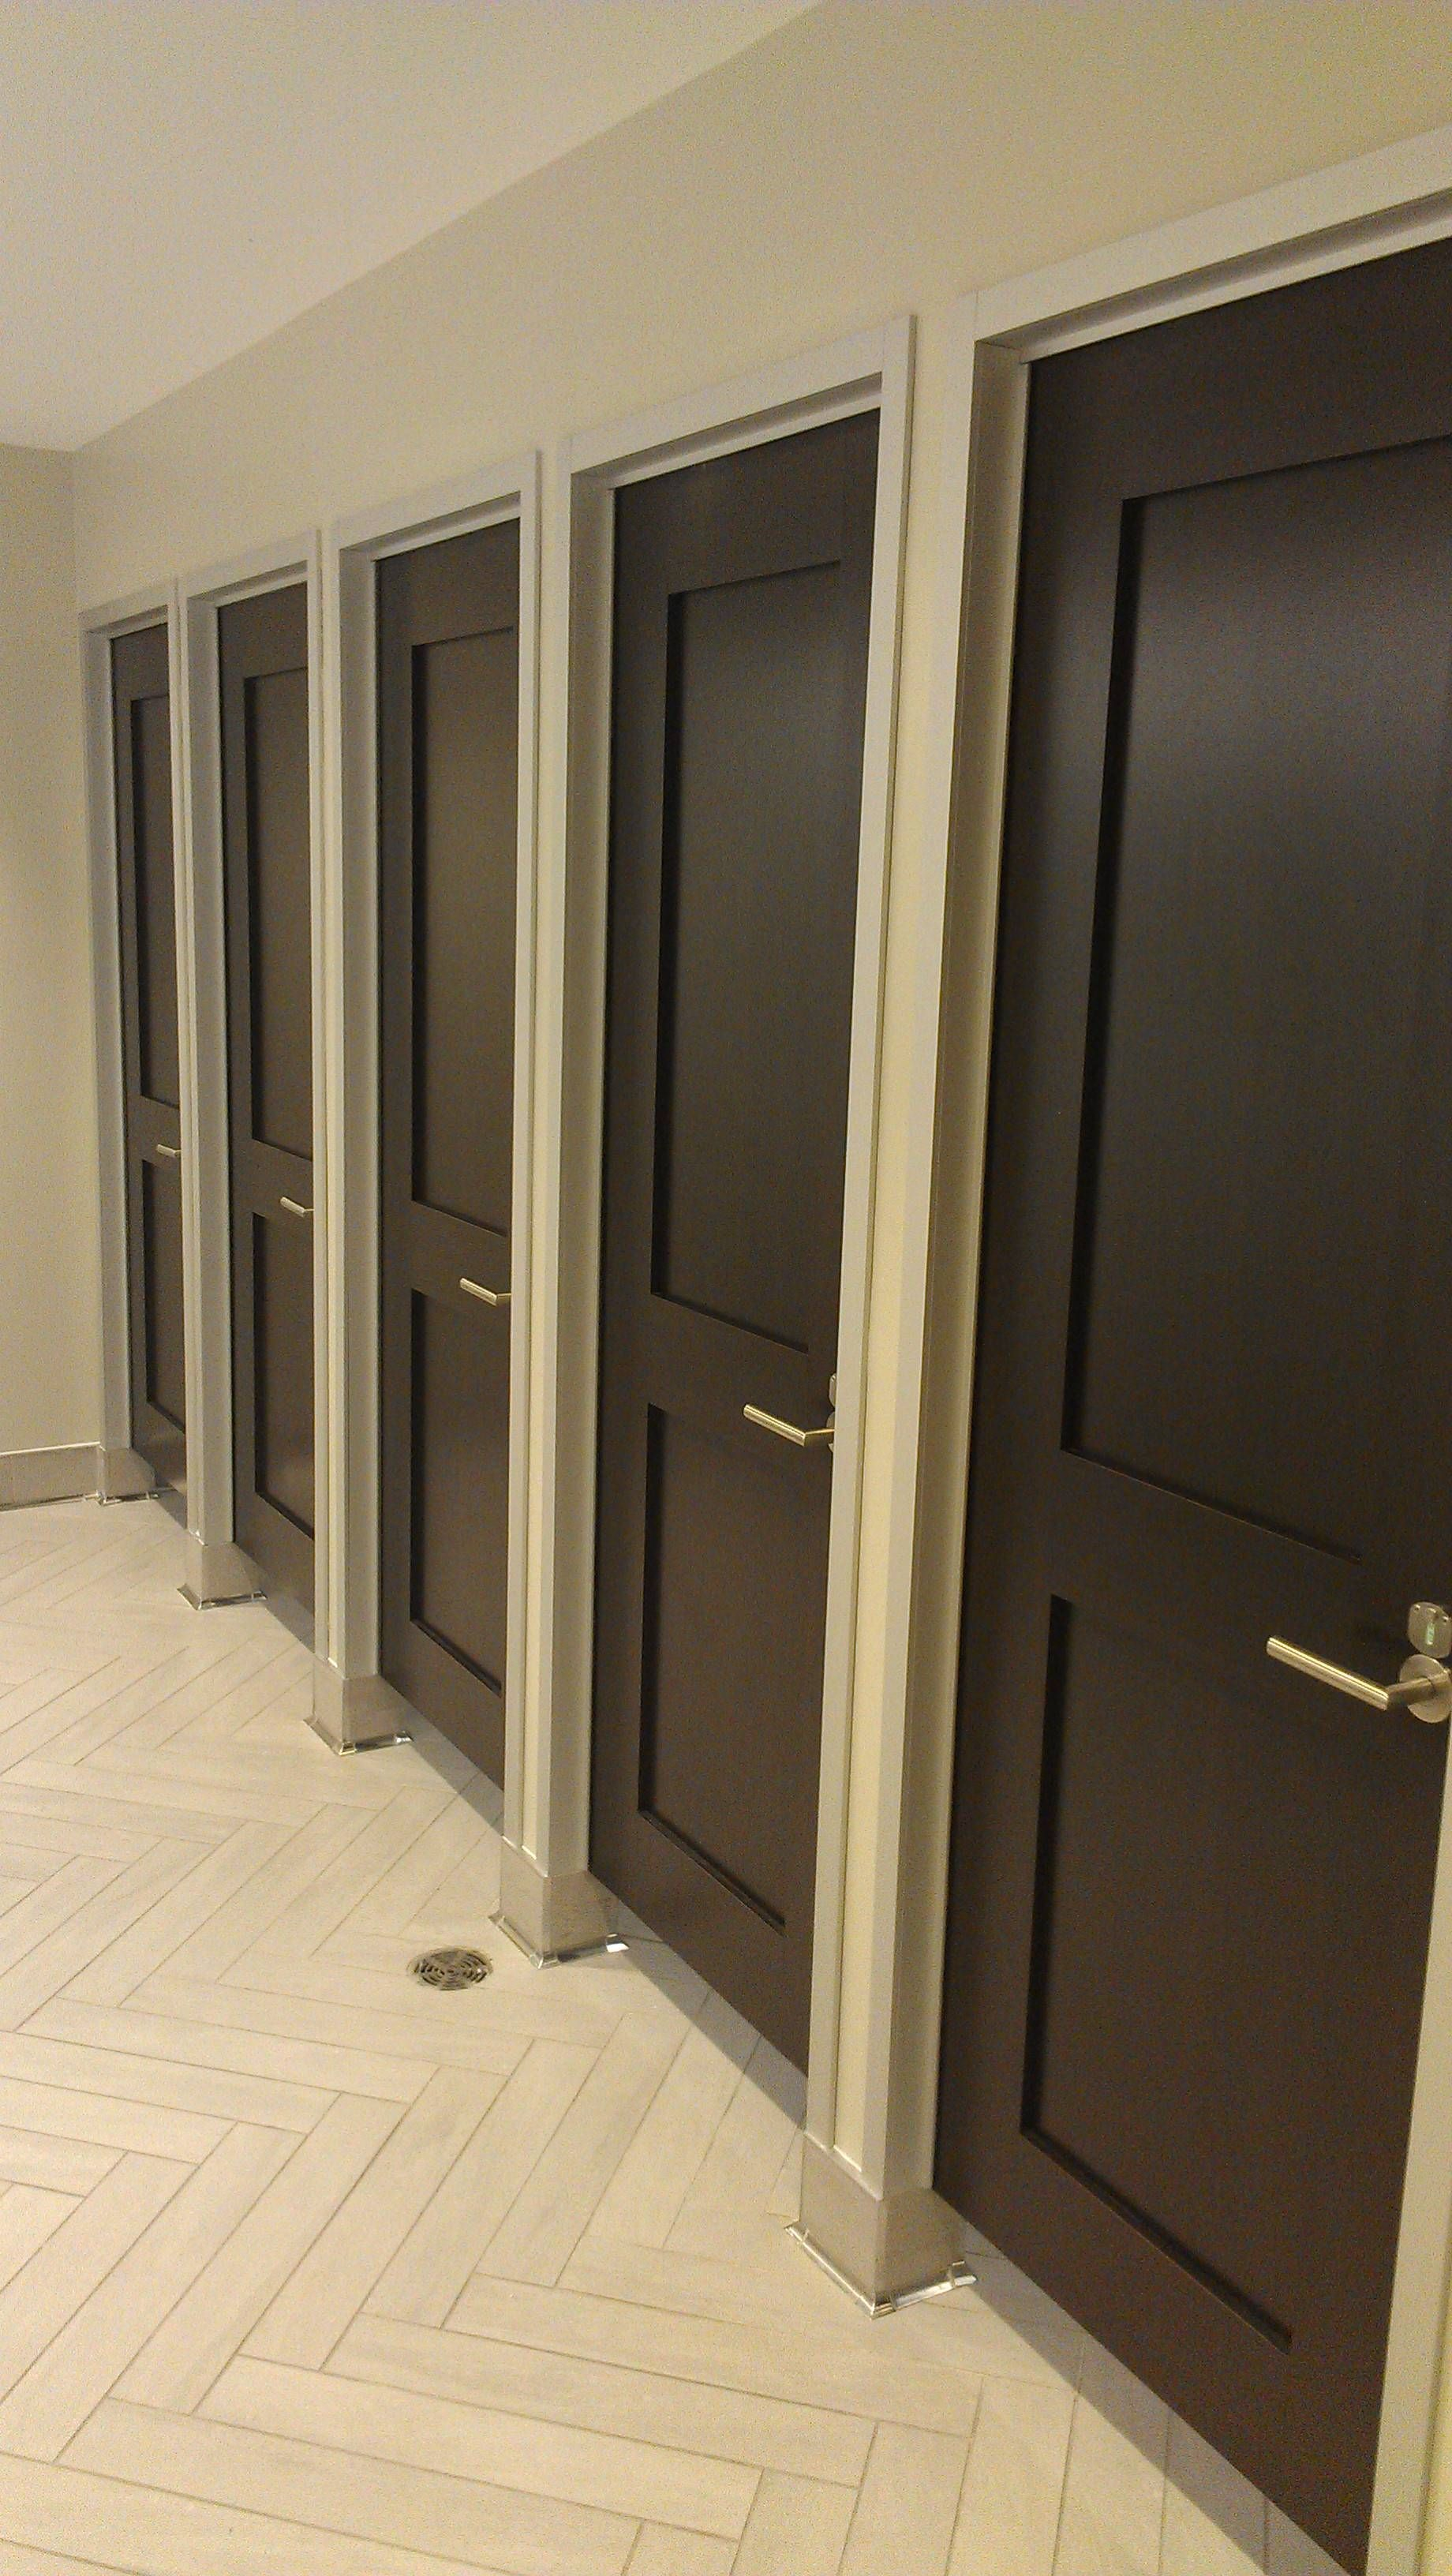 Bathroom Stalls In Europe luxury toilet stalls - google search | hale building | pinterest